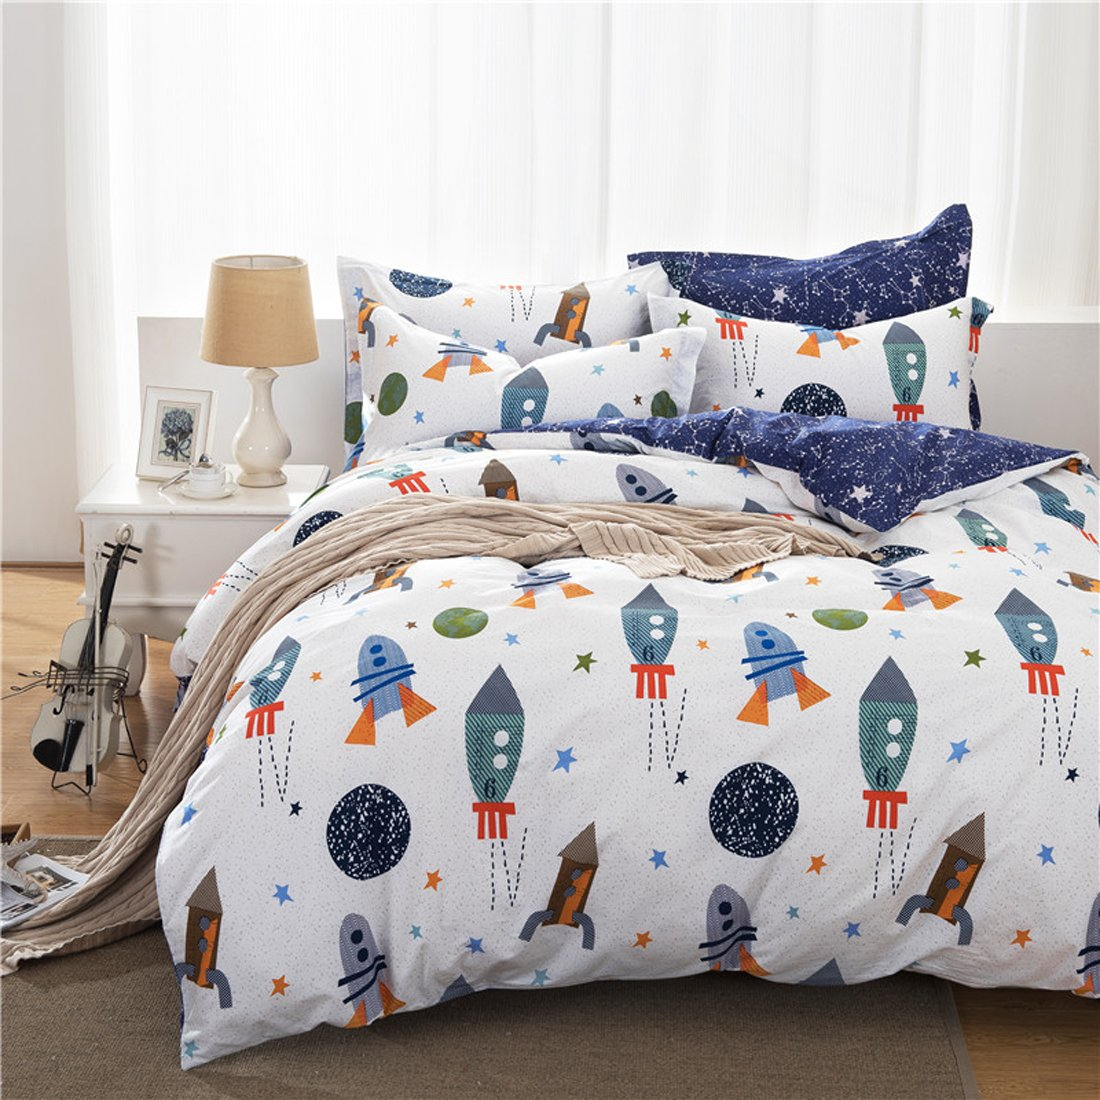 JIBUTENG Home Textiles Cotton Universe Airship Duvet Cover Set,Space Adventure Beding Set ,Blue Sheet Set Boys Full Size 4Pcs (Full, Flat sheet)